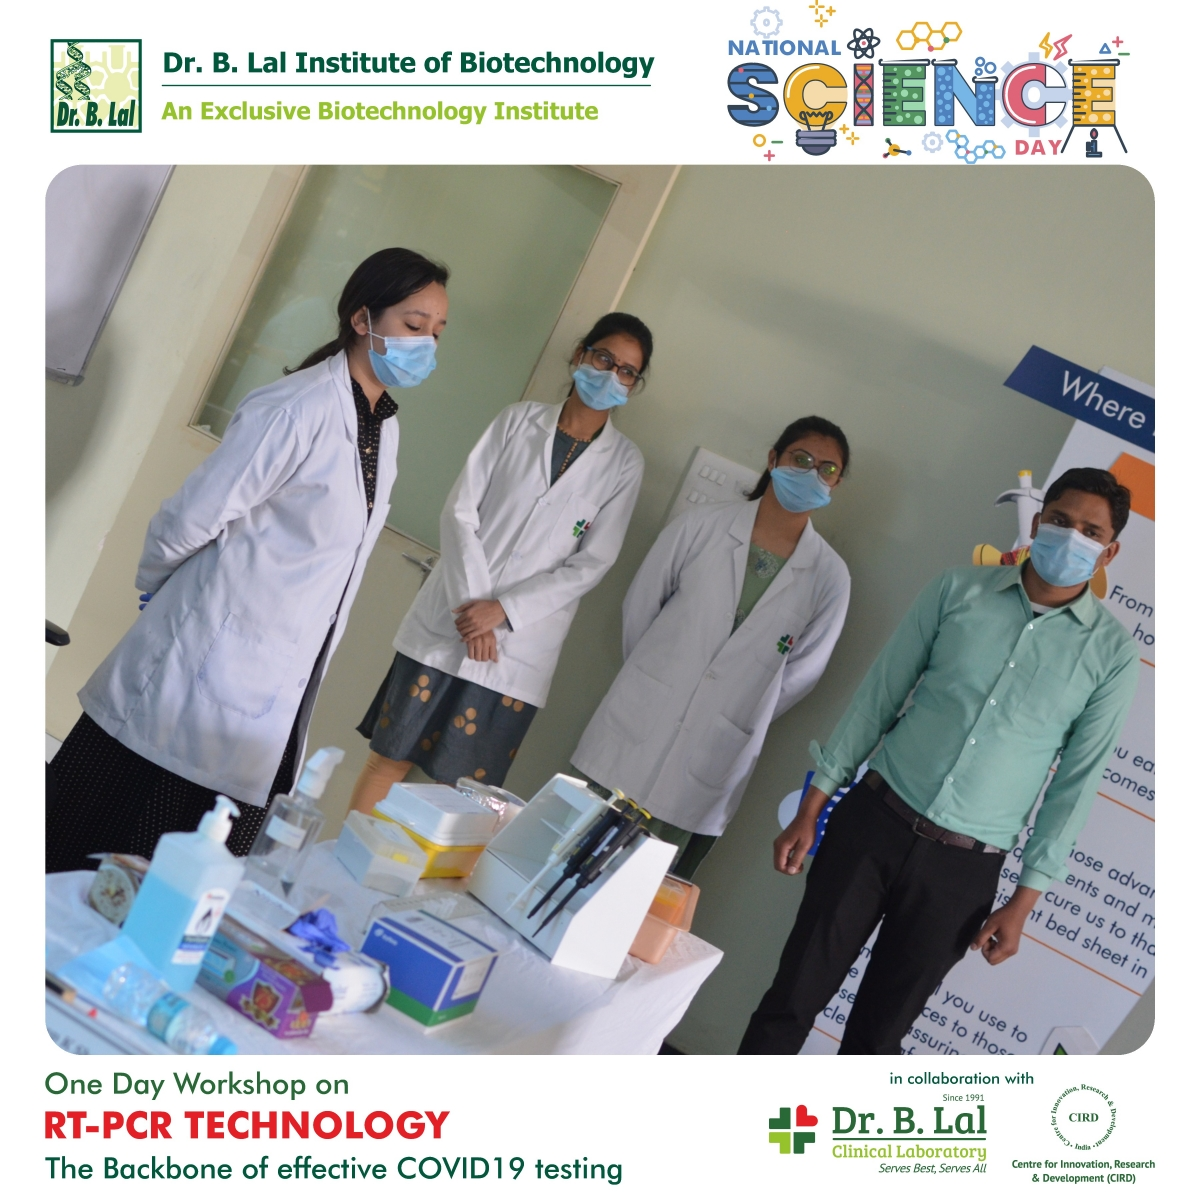 One day workshop on RT-PCR Technology